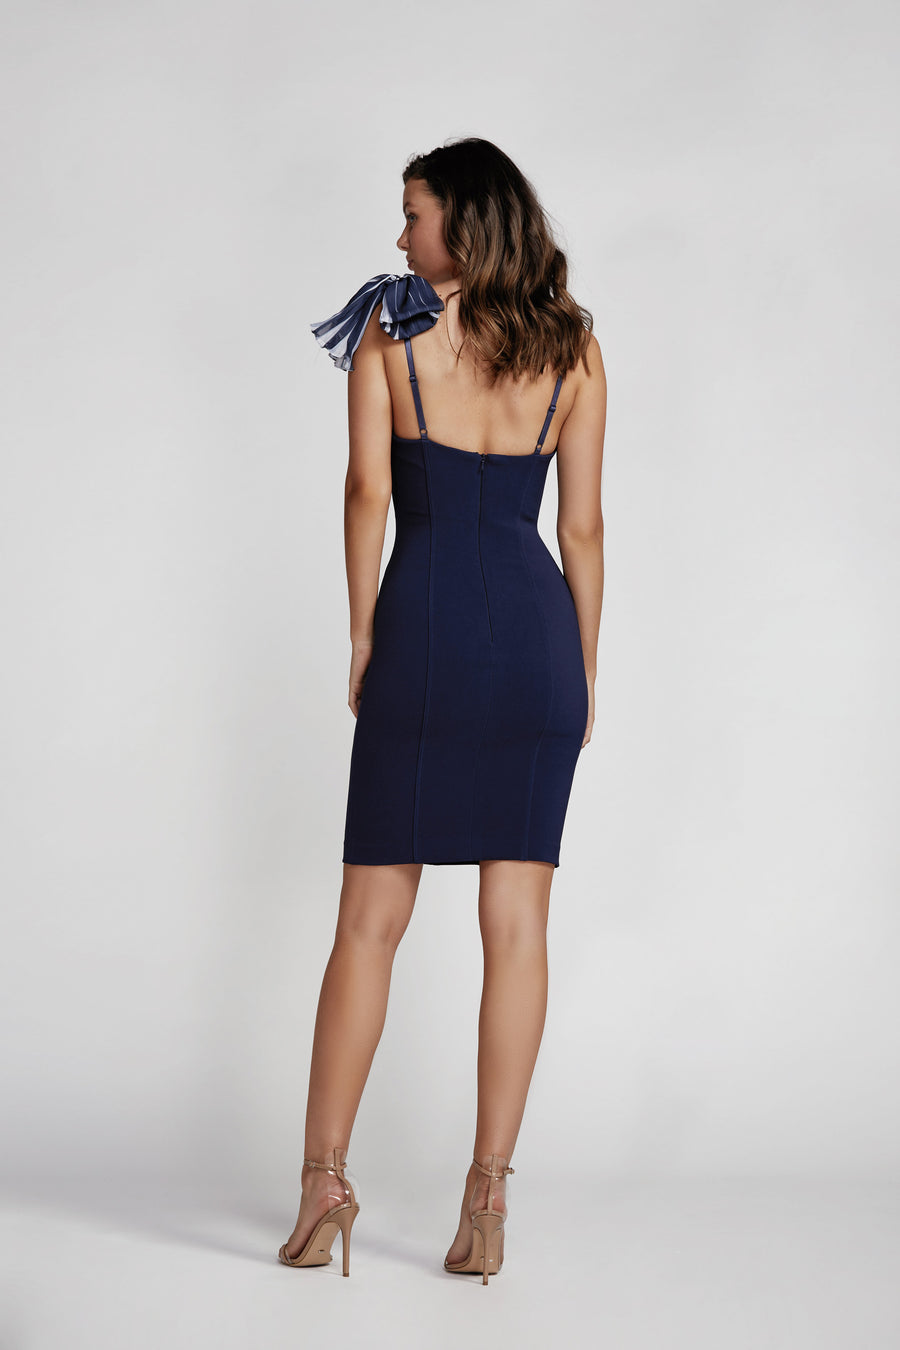 Rocia Dress - Twilight Blue